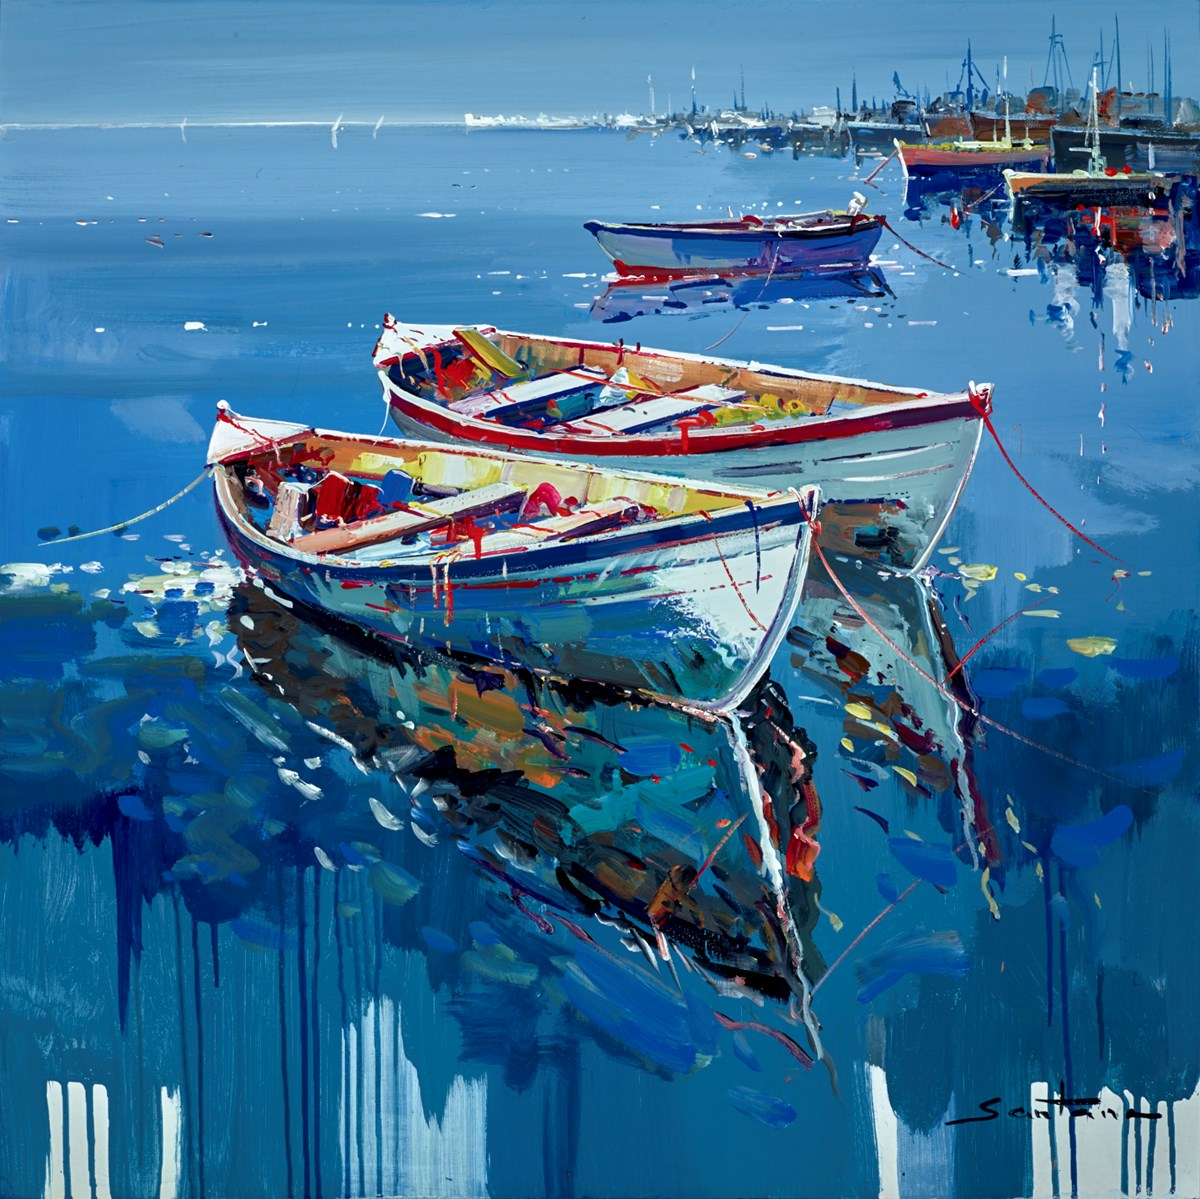 Summer Mooring II by santana -  sized 32x32 inches. Available from Whitewall Galleries